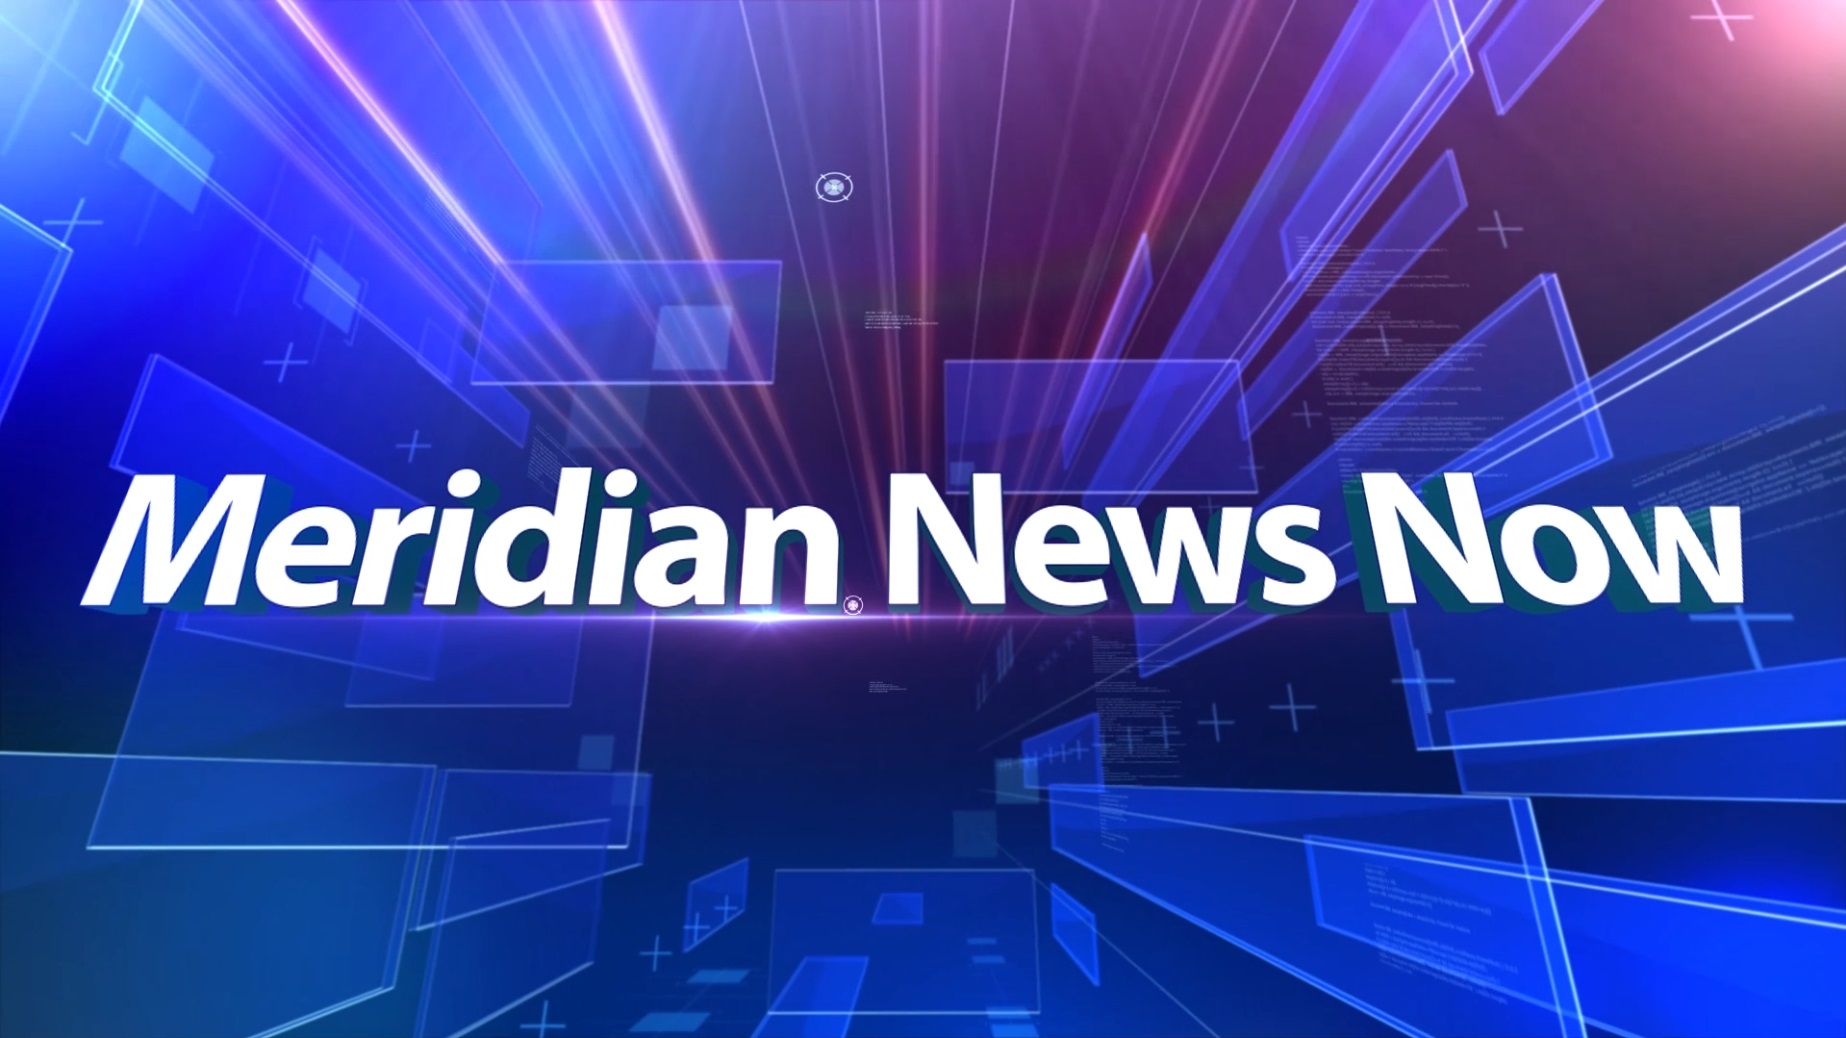 Meridian News Now